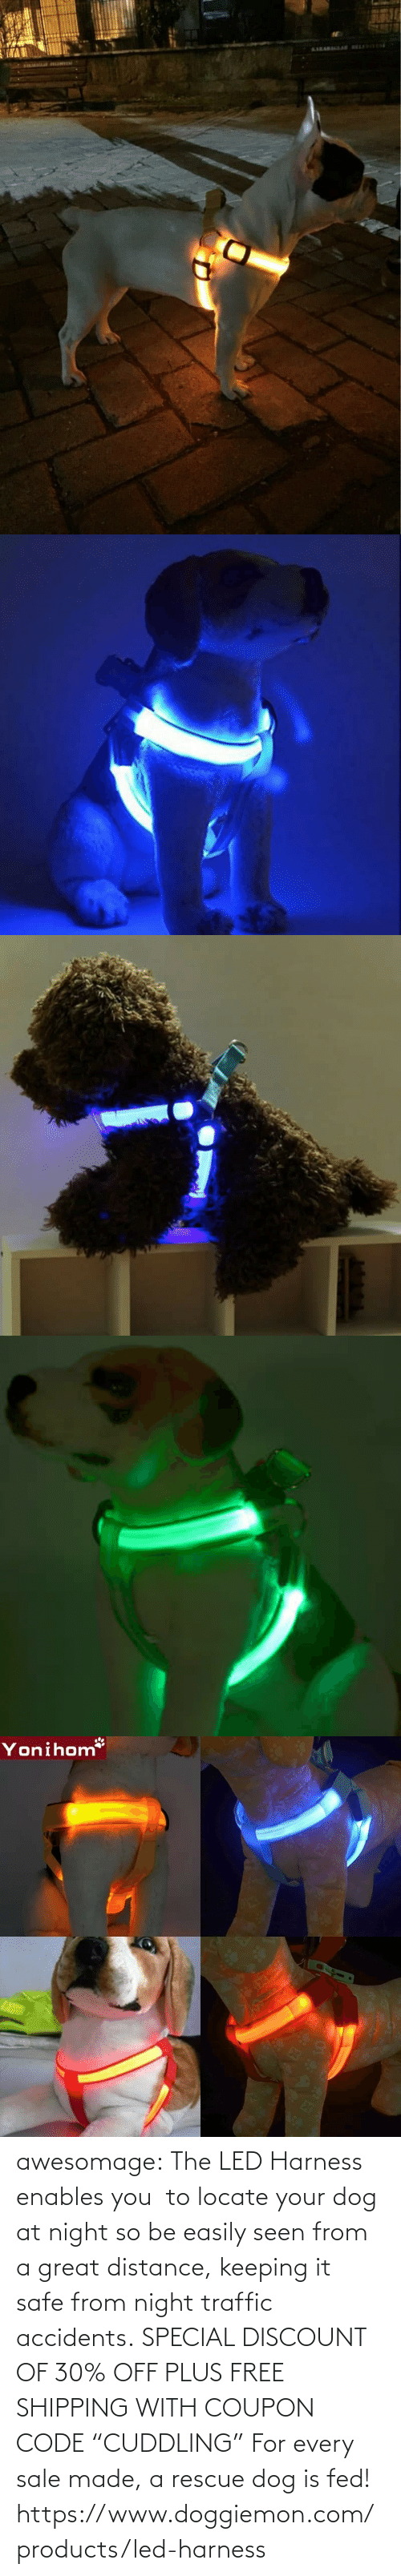 "A Great: awesomage:   The LED Harness enables you  to locate your dog at night so be easily seen from a great distance, keeping it safe from night traffic accidents. SPECIAL DISCOUNT OF 30% OFF PLUS FREE SHIPPING WITH COUPON CODE ""CUDDLING"" For every sale made, a rescue dog is fed!   https://www.doggiemon.com/products/led-harness"